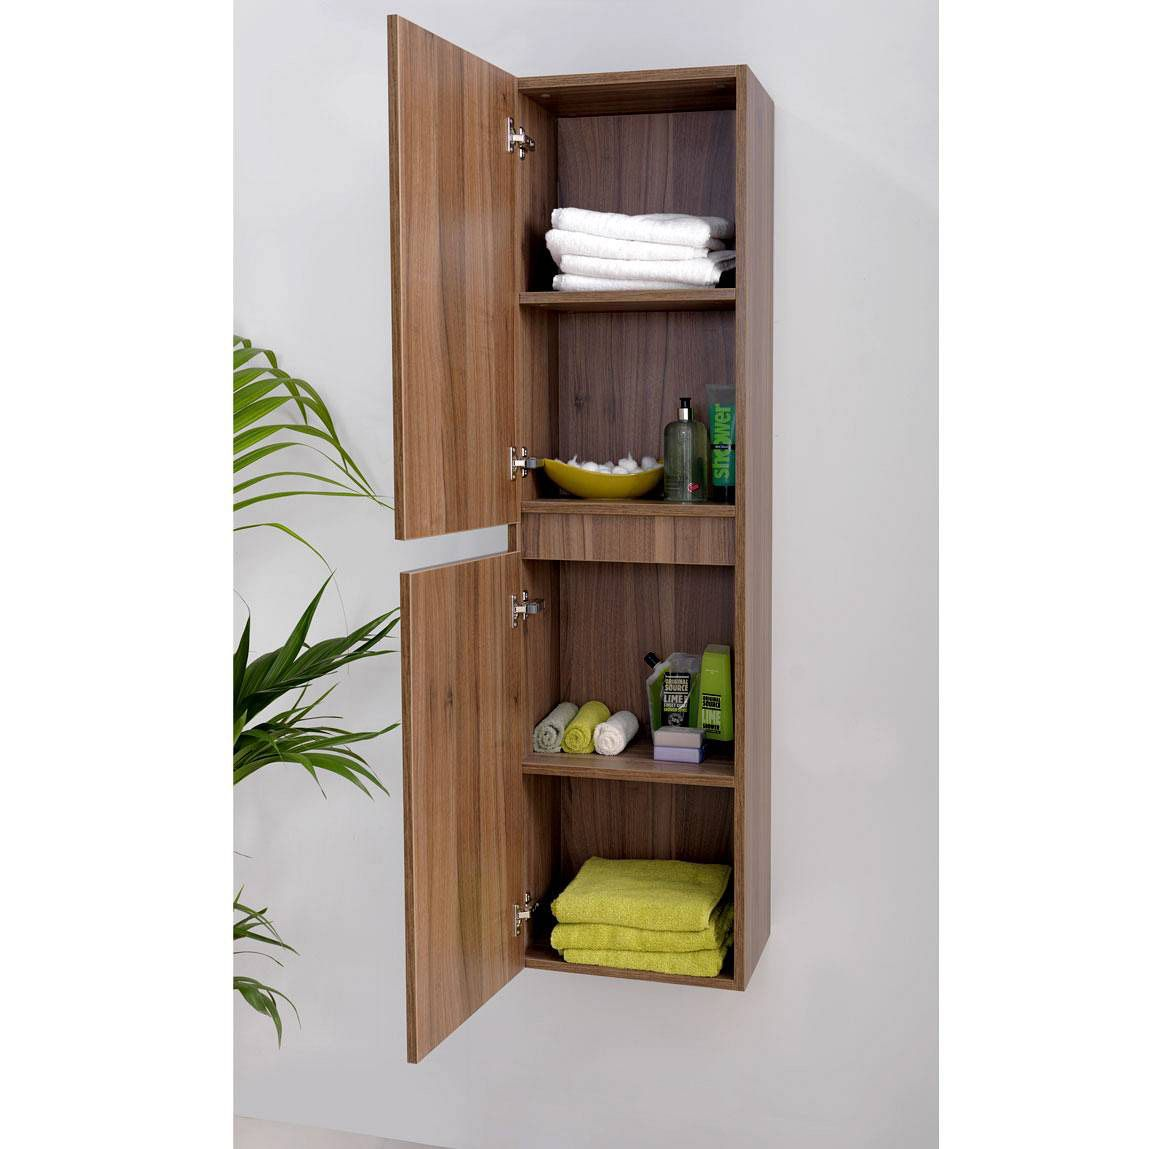 Cabinets For Bathrooms is listed in our Wall Cabinets For Bathrooms 1149x1149